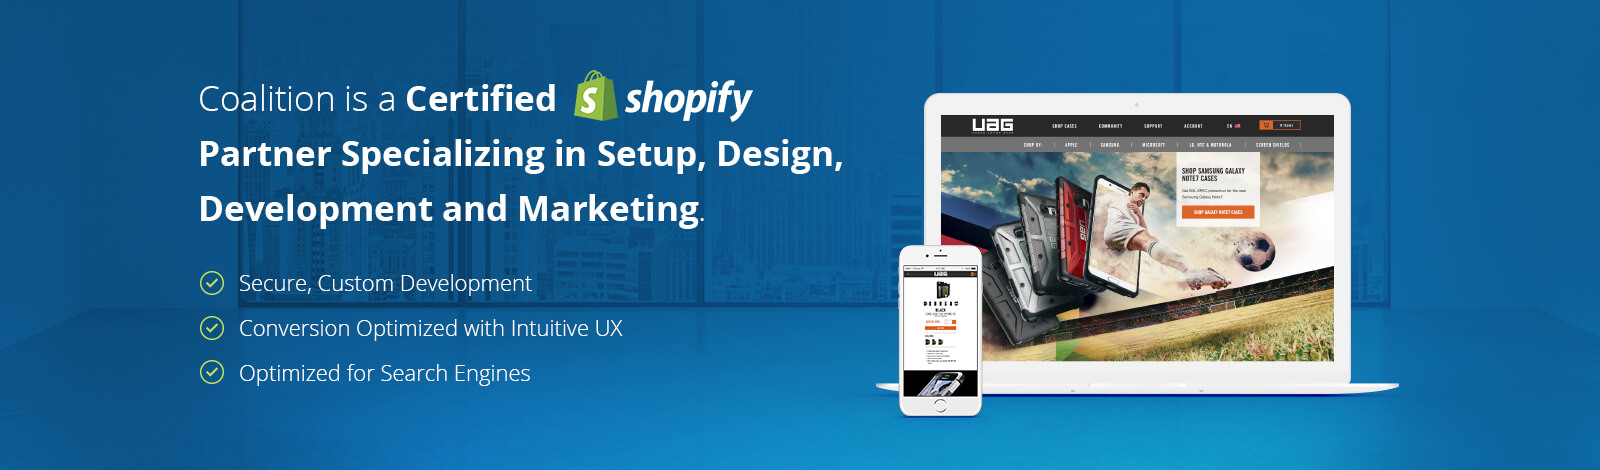 Shopify Website Design & Development Service in Los Angeles